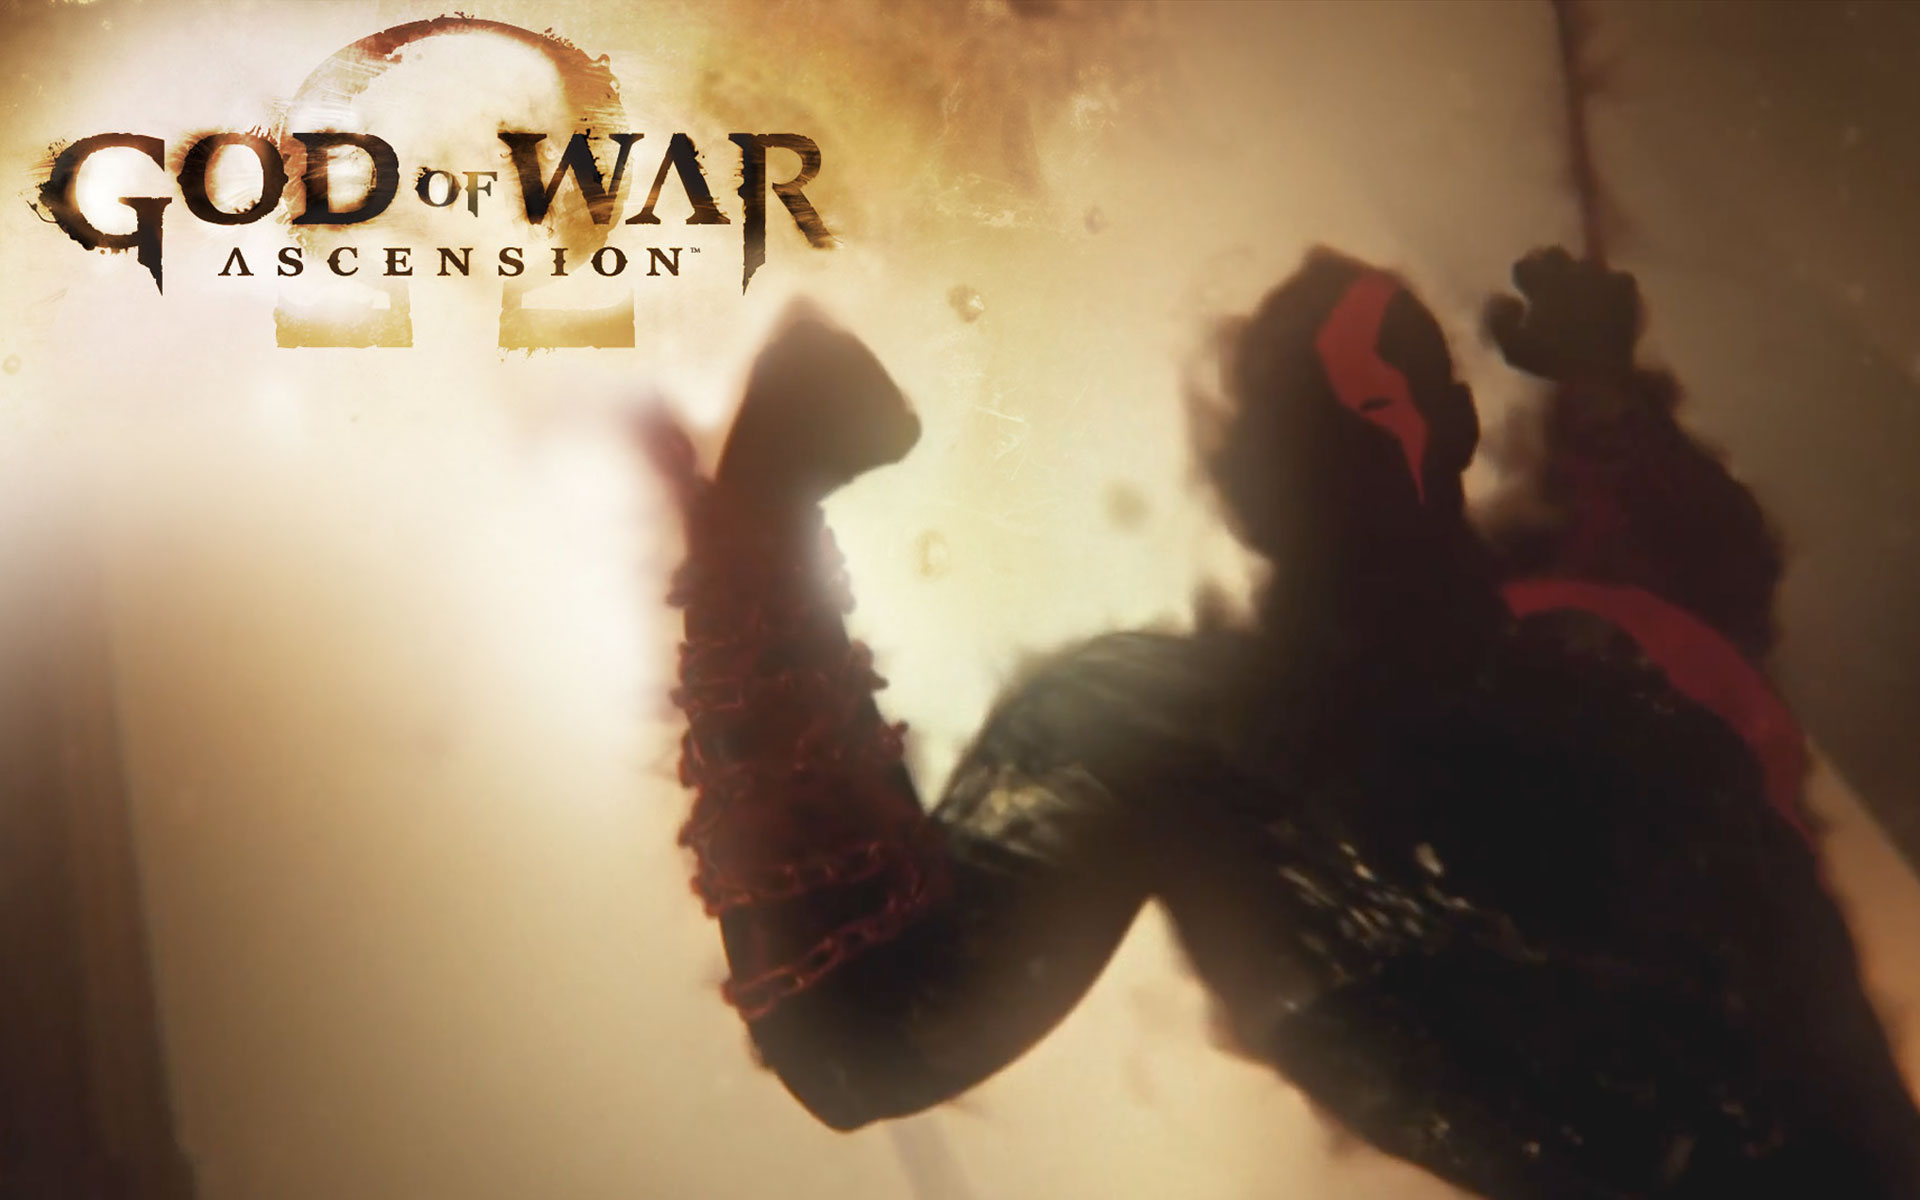 God of war ascension wallpapers in hd gamingbolt video 10024026 voltagebd Image collections